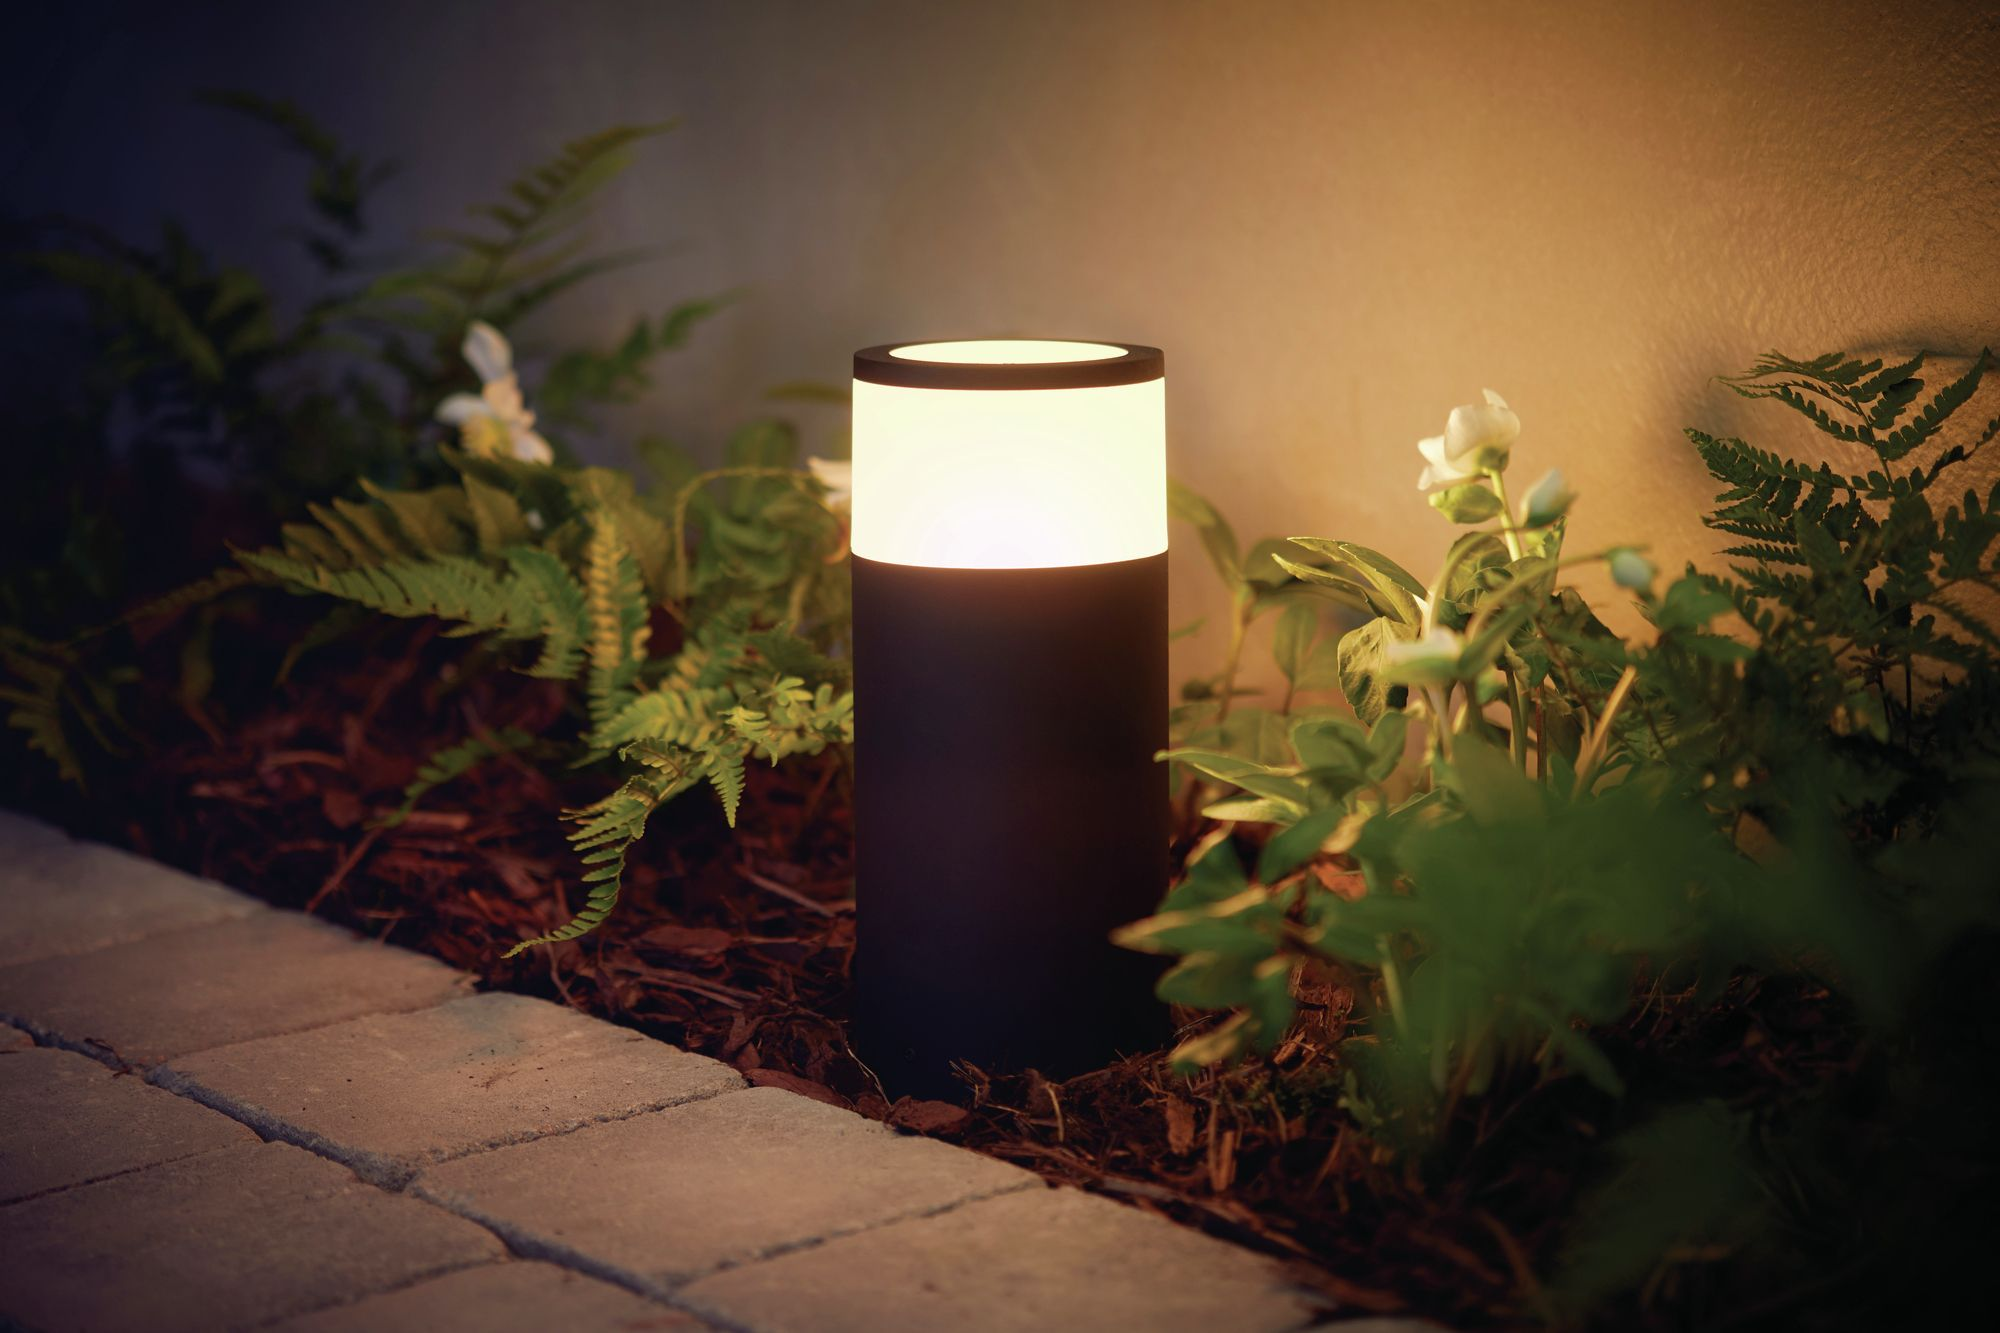 Philips Hue Takes Smart Light Bulbs Outdoors Set To Launch This July The Company S New Outdoor Lights Can B Outdoor Pathway Lighting Hue Philips Hue Lights